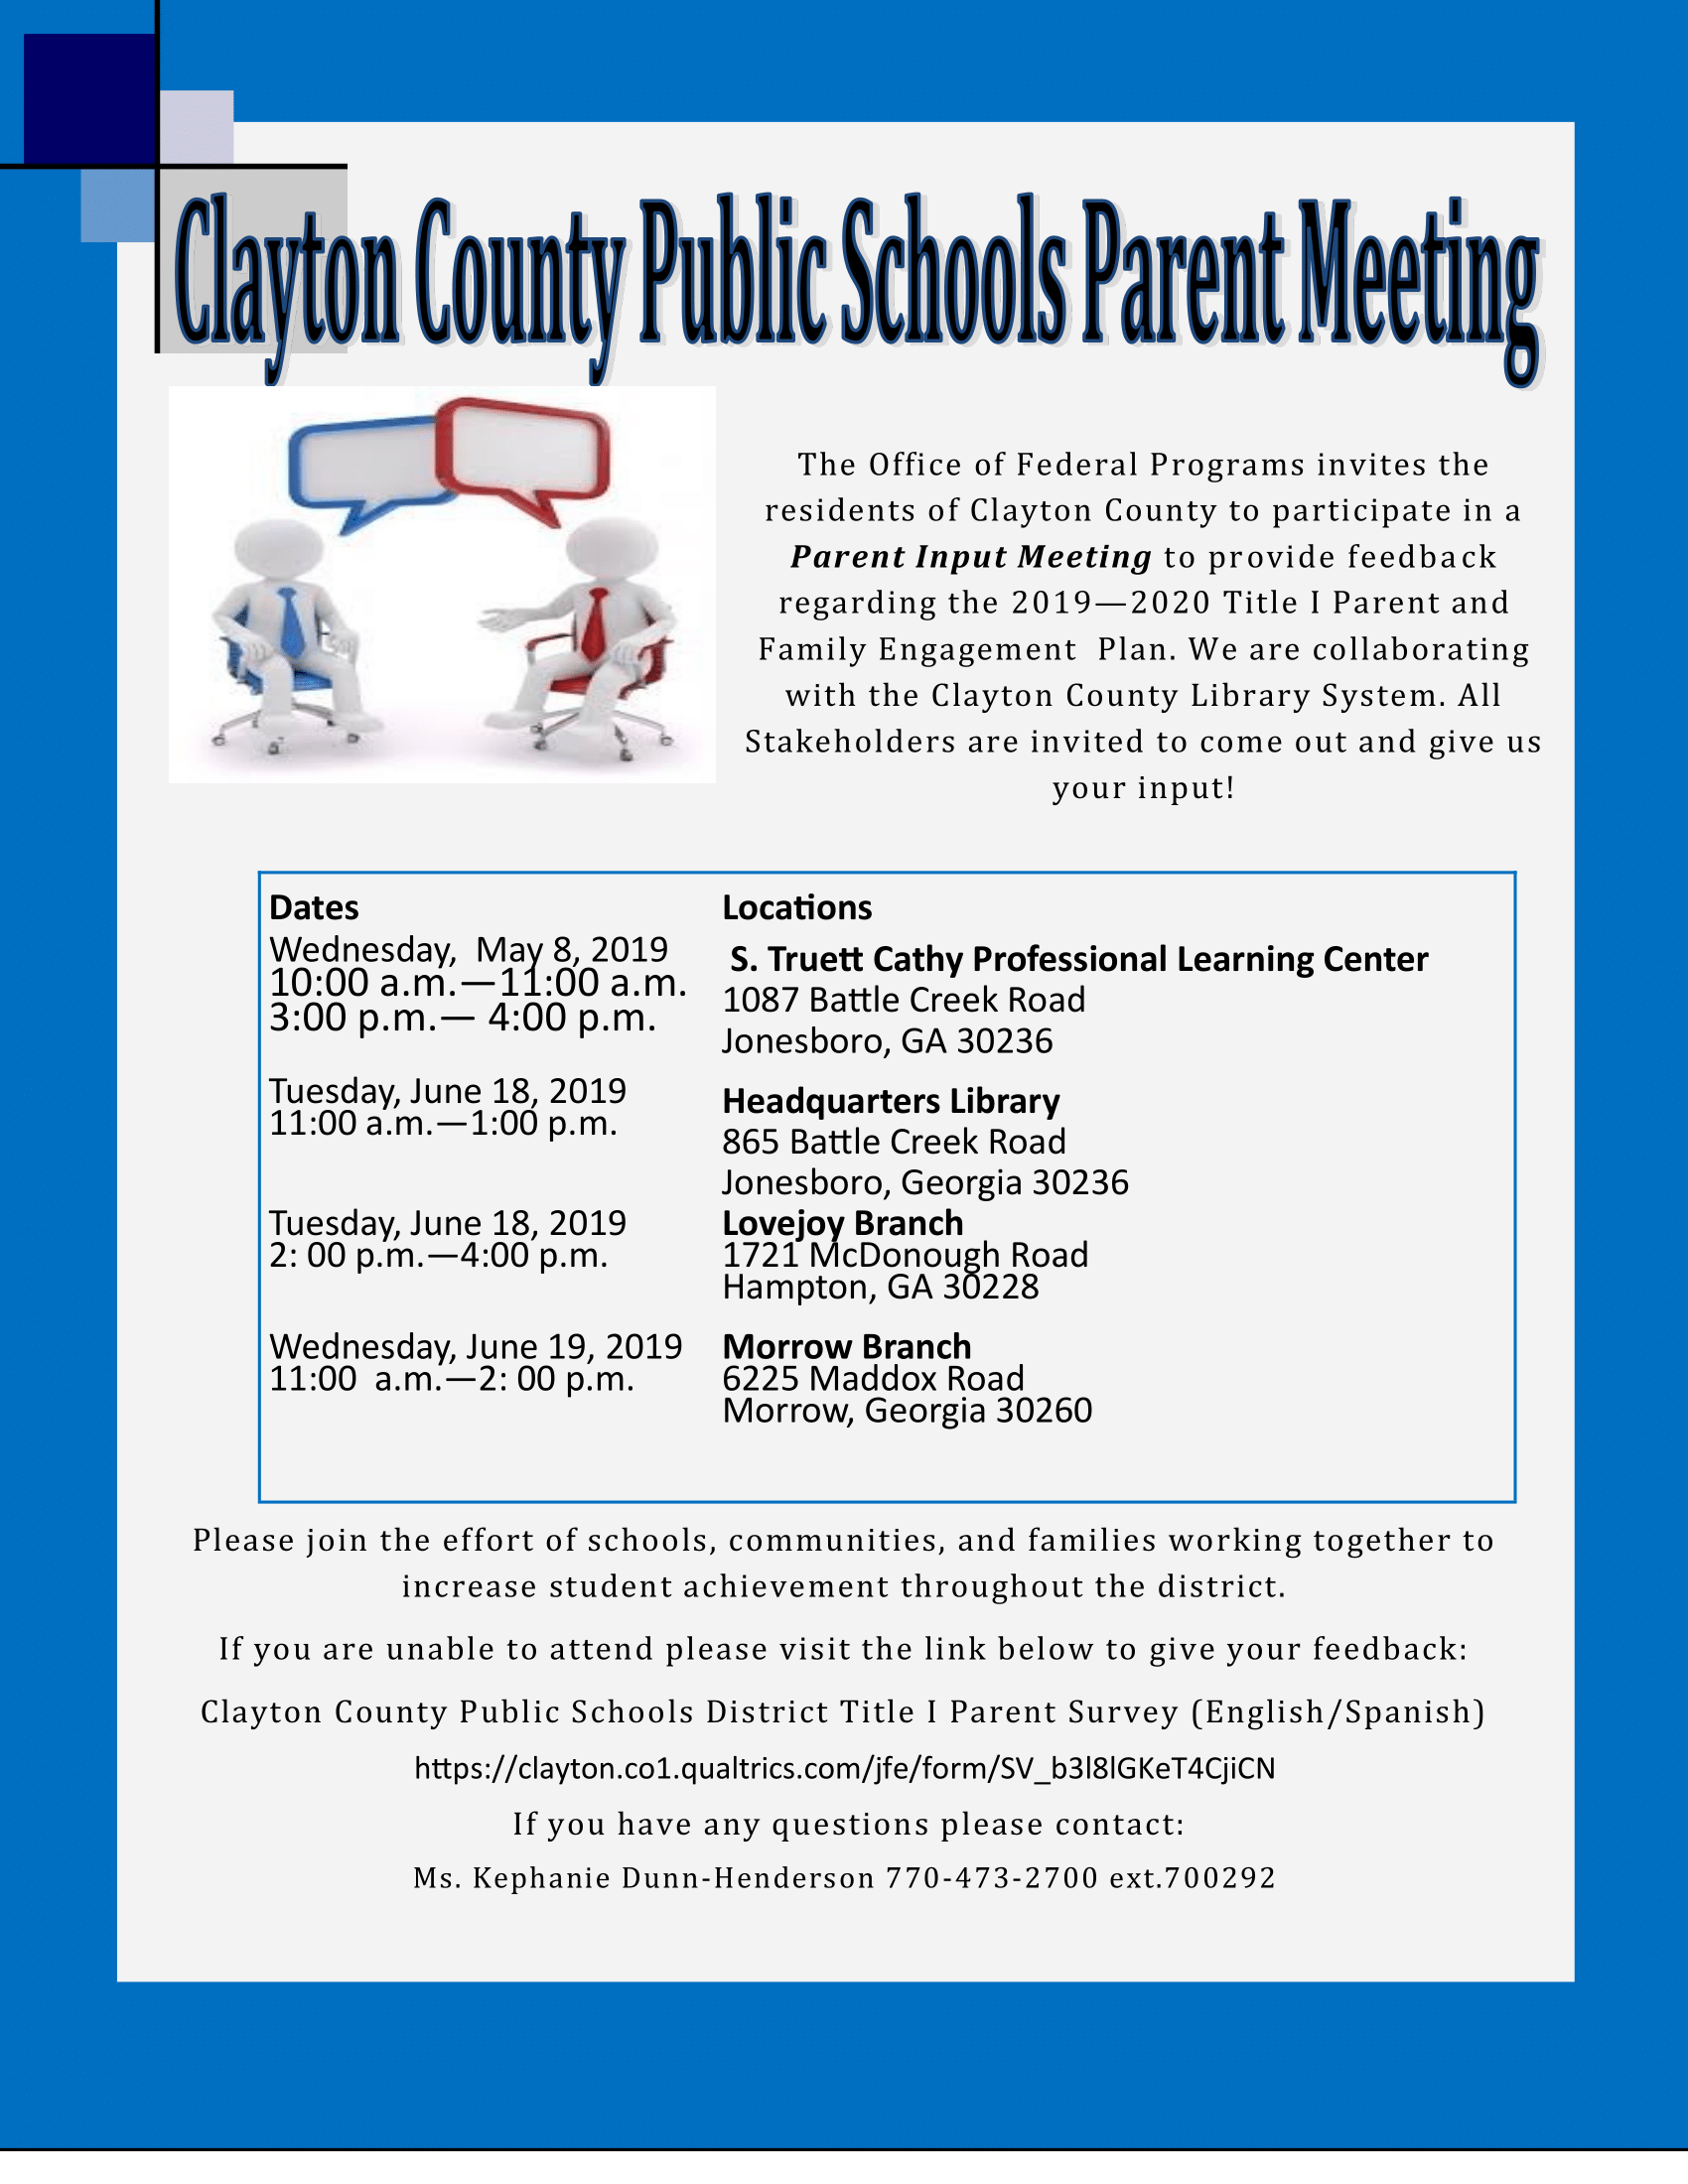 CCPS Parent Meetings